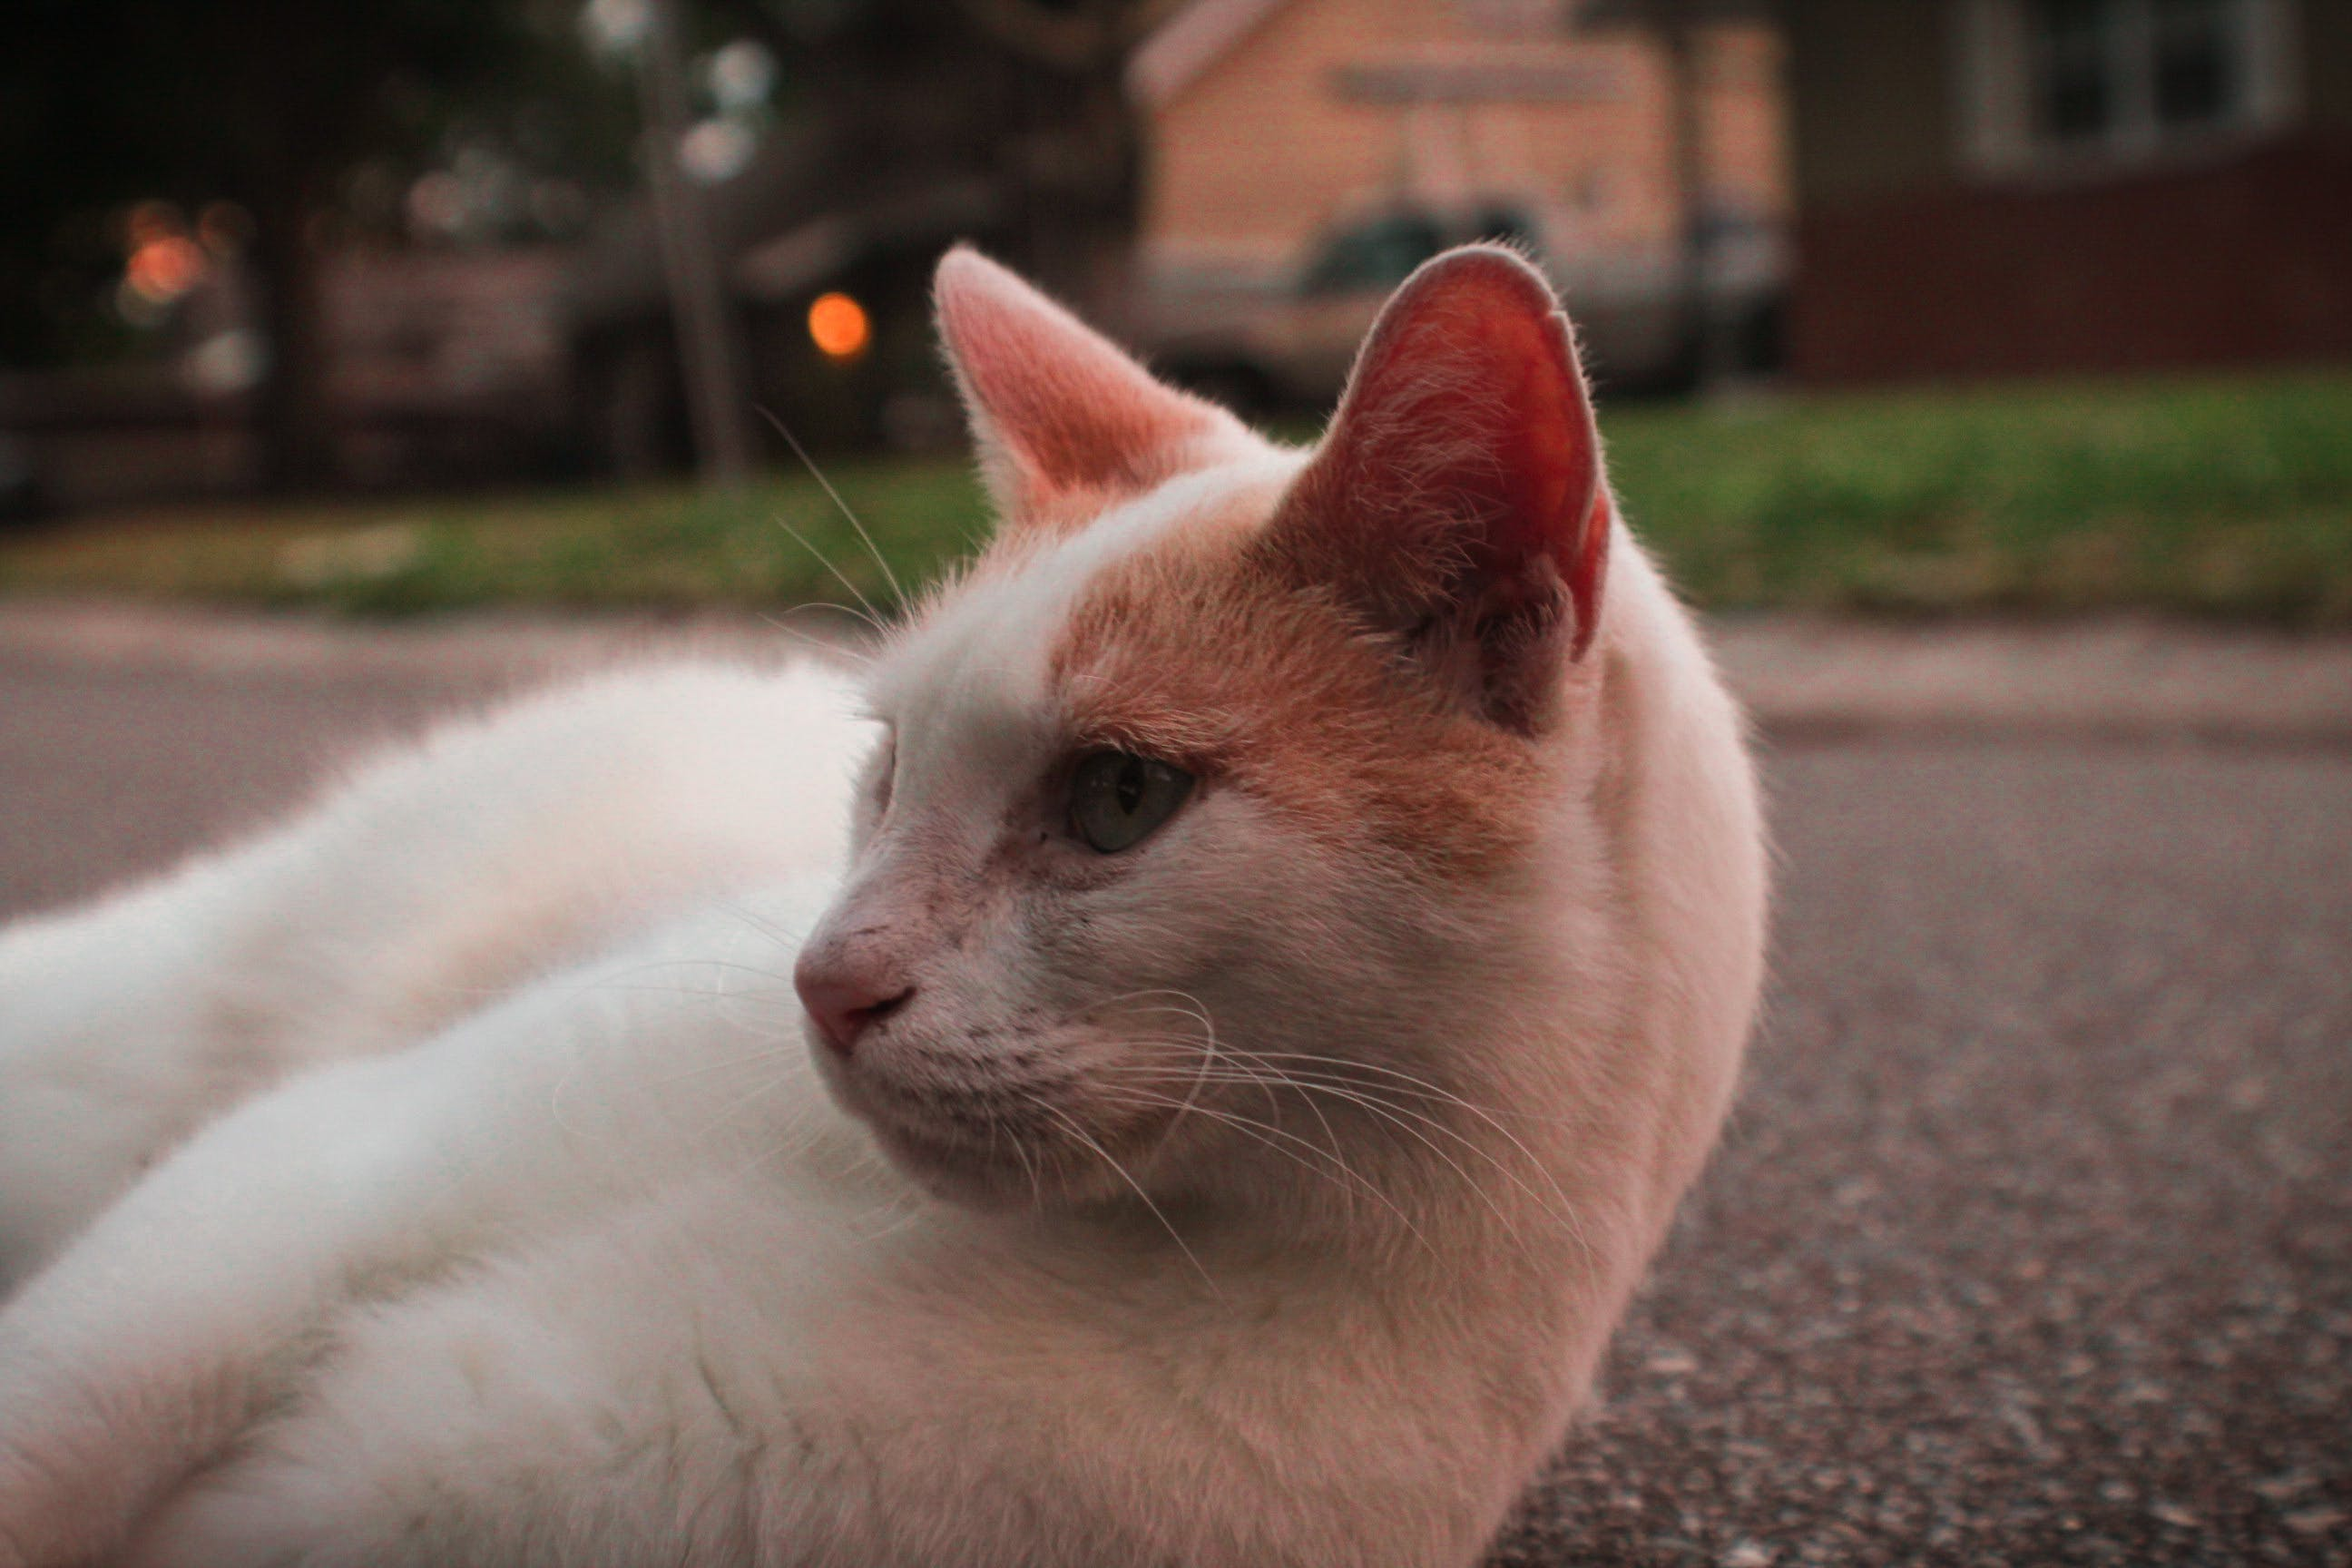 White and Orange Cat Lying on Pavement